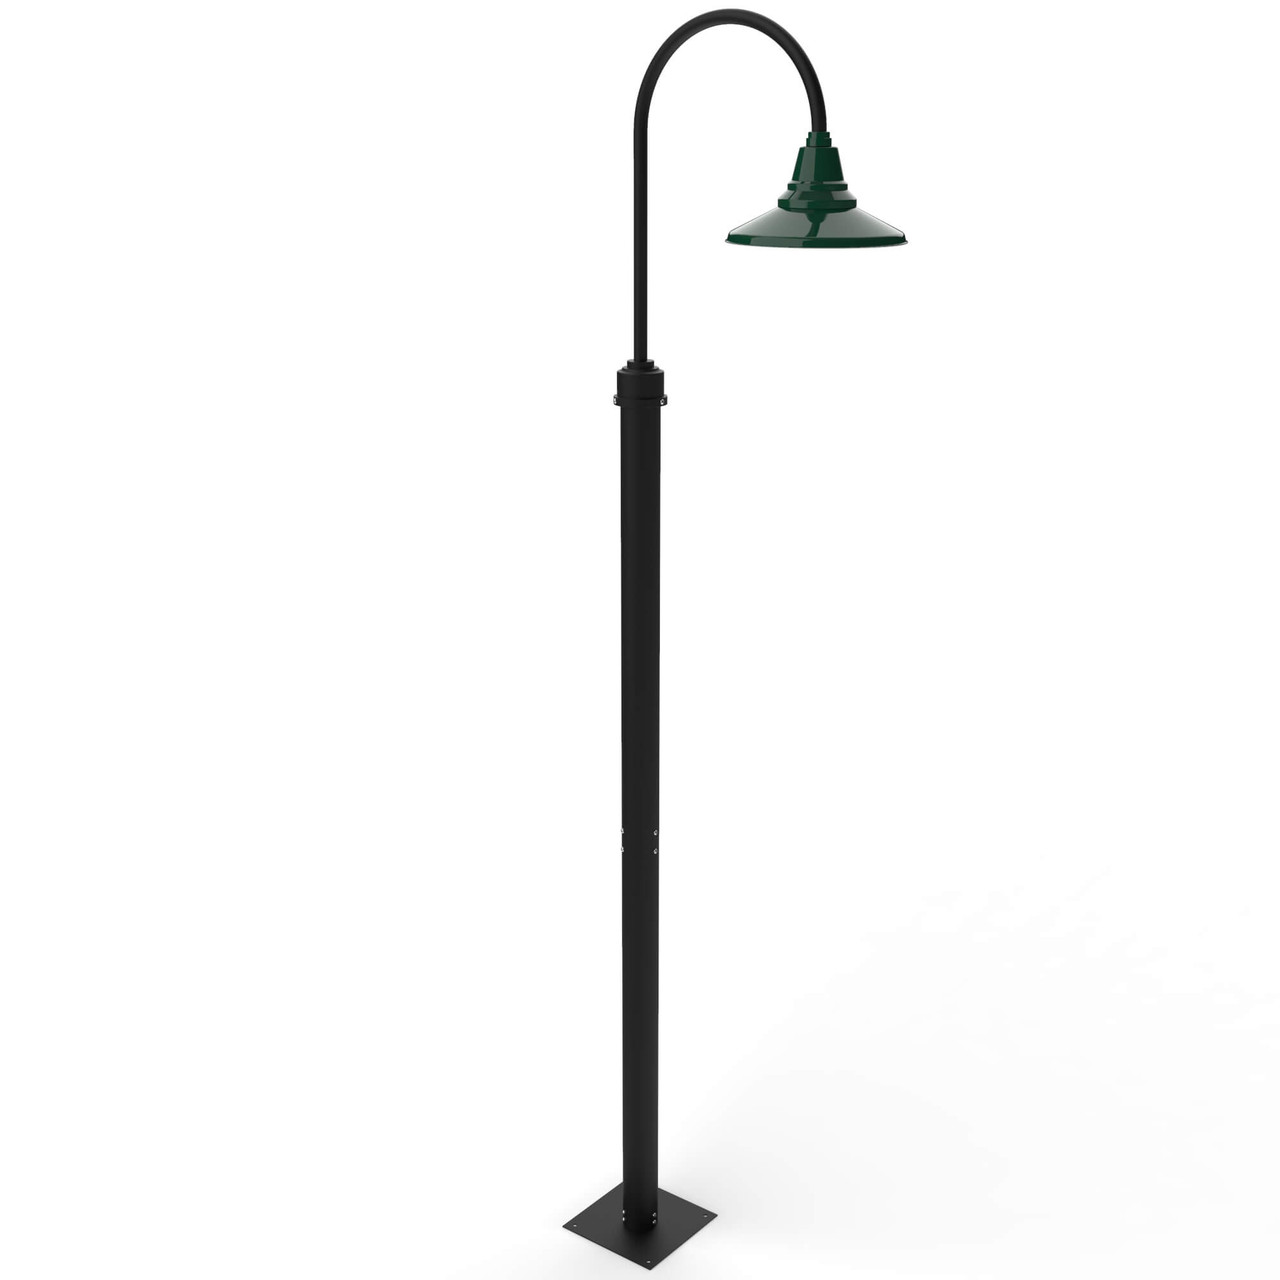 Calla Outdoor Lamp Post Light With Vintage Green Shade Cocoweb Quality Led Lighting Specialists